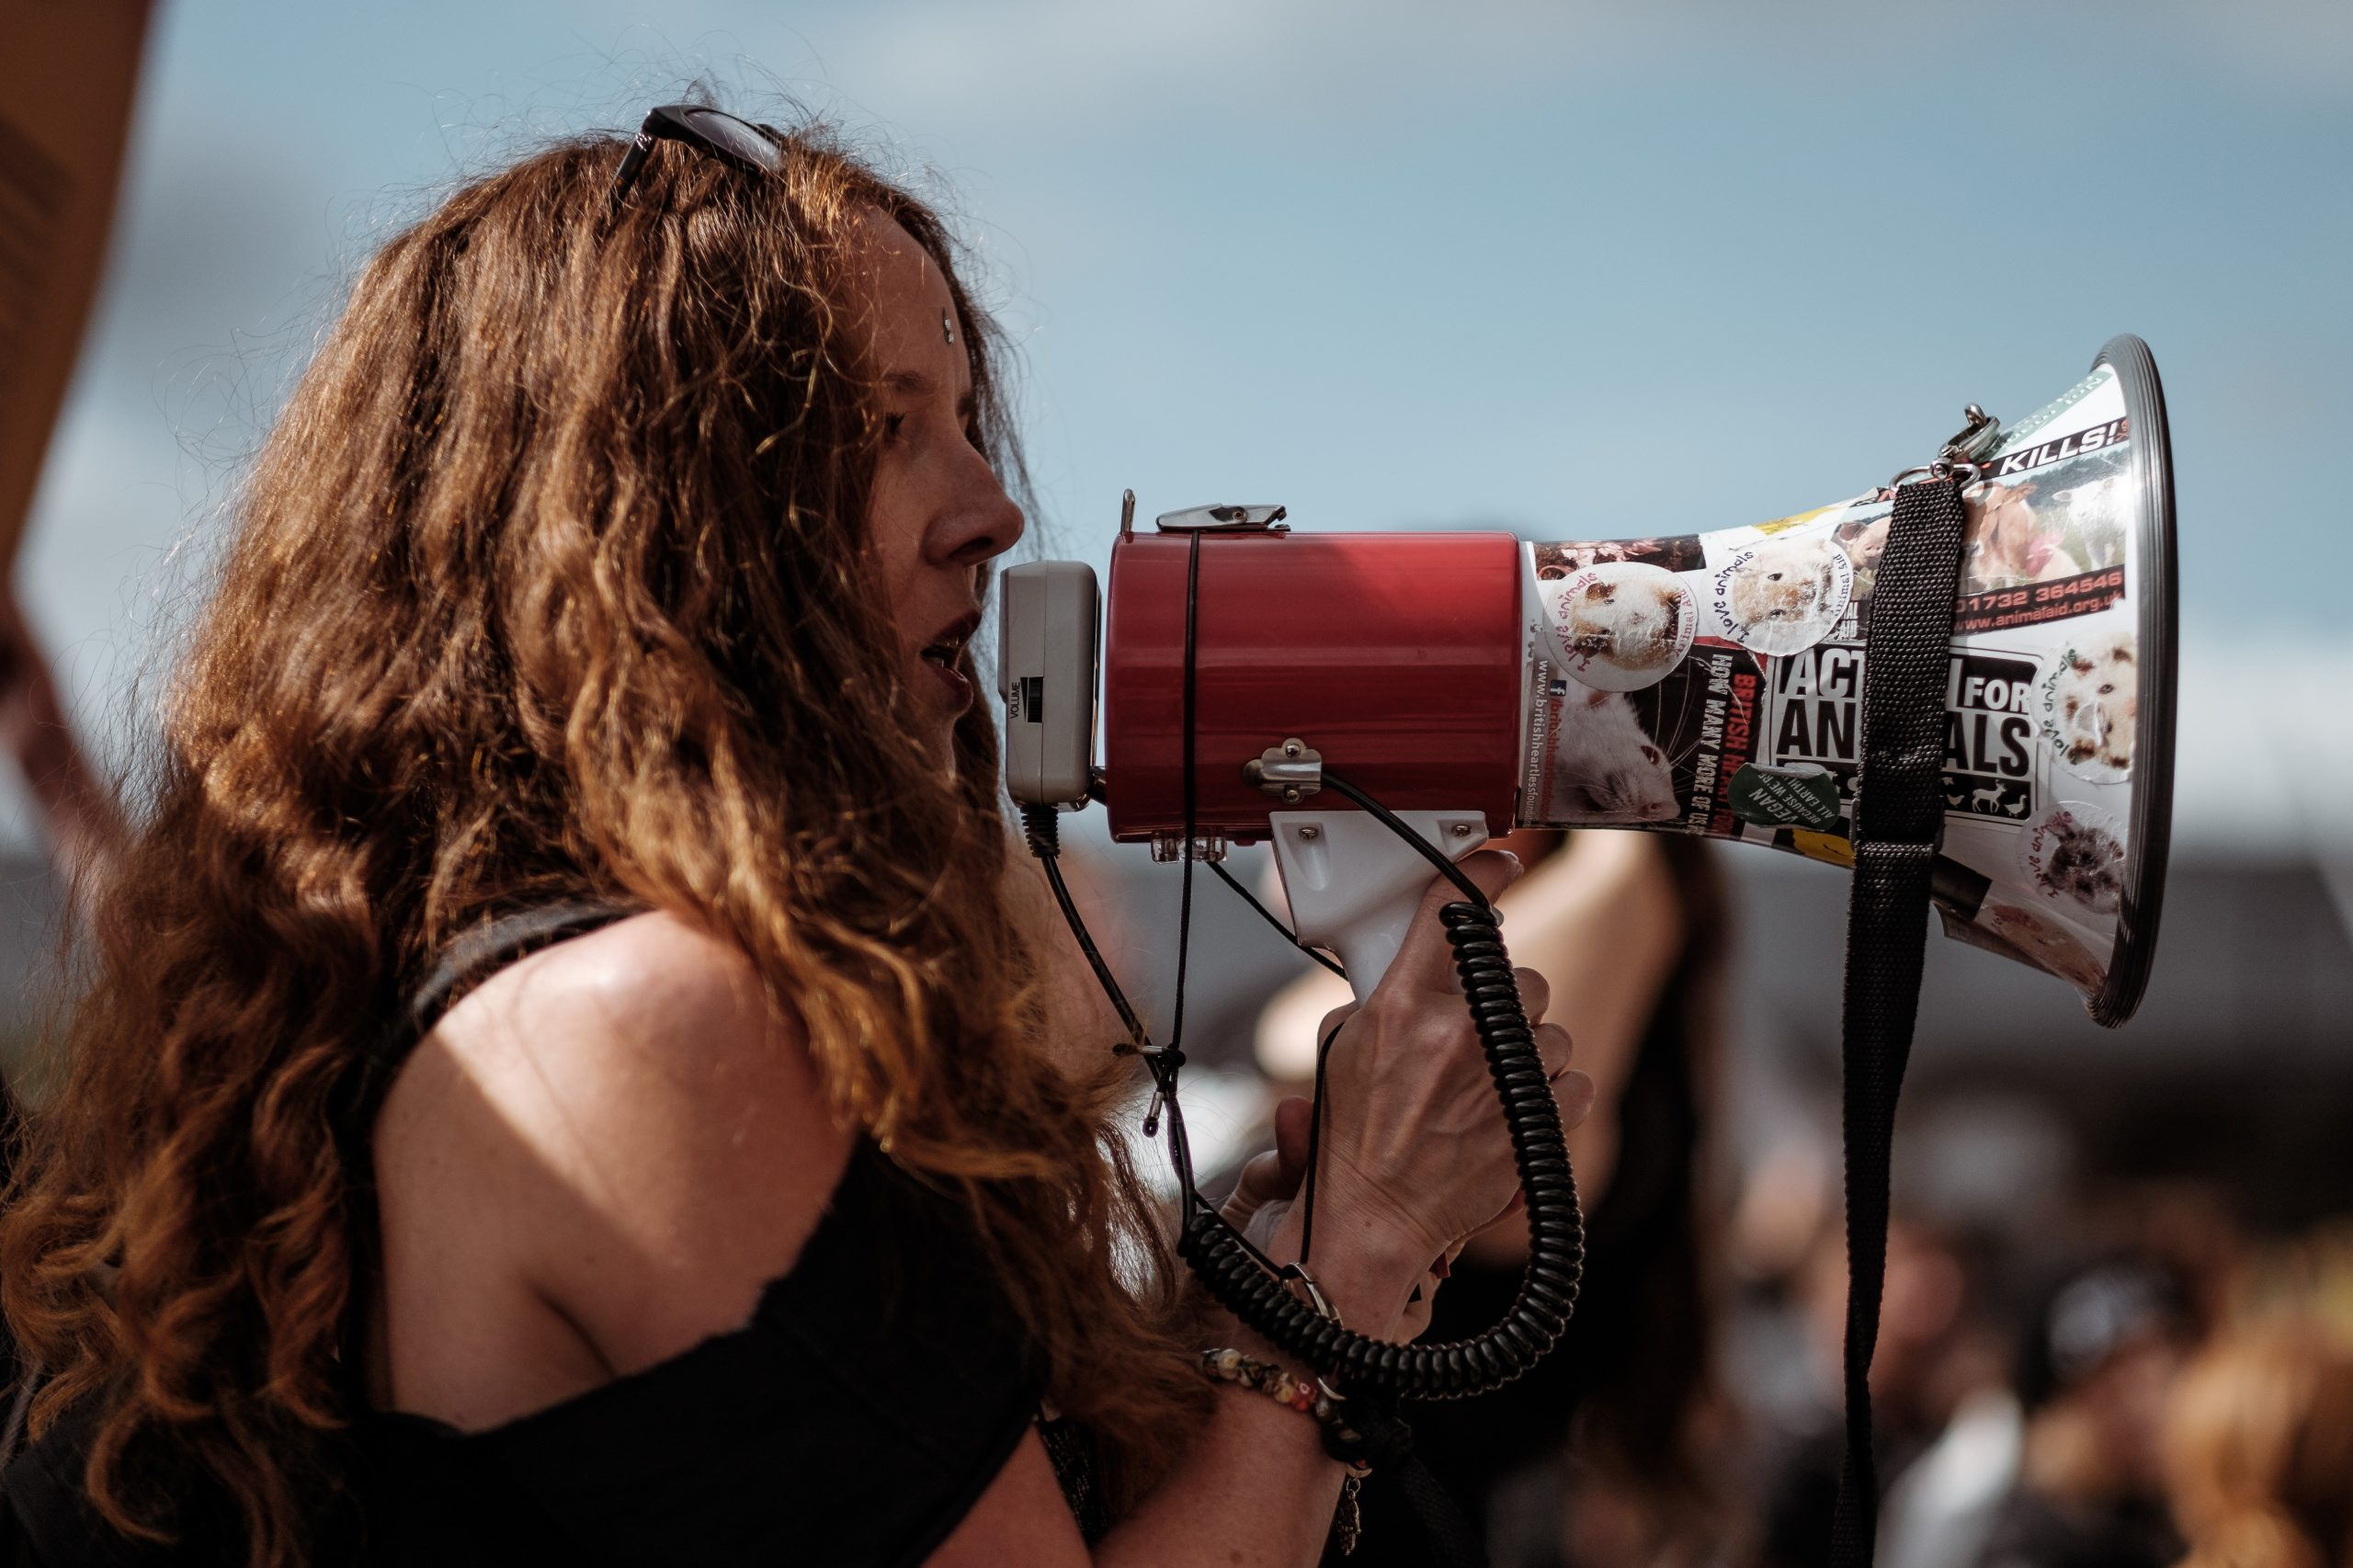 MITA-CAUSES-SOLIDARITY-Pics-of-Protests-clem-onojeghuo-381204-unsplash